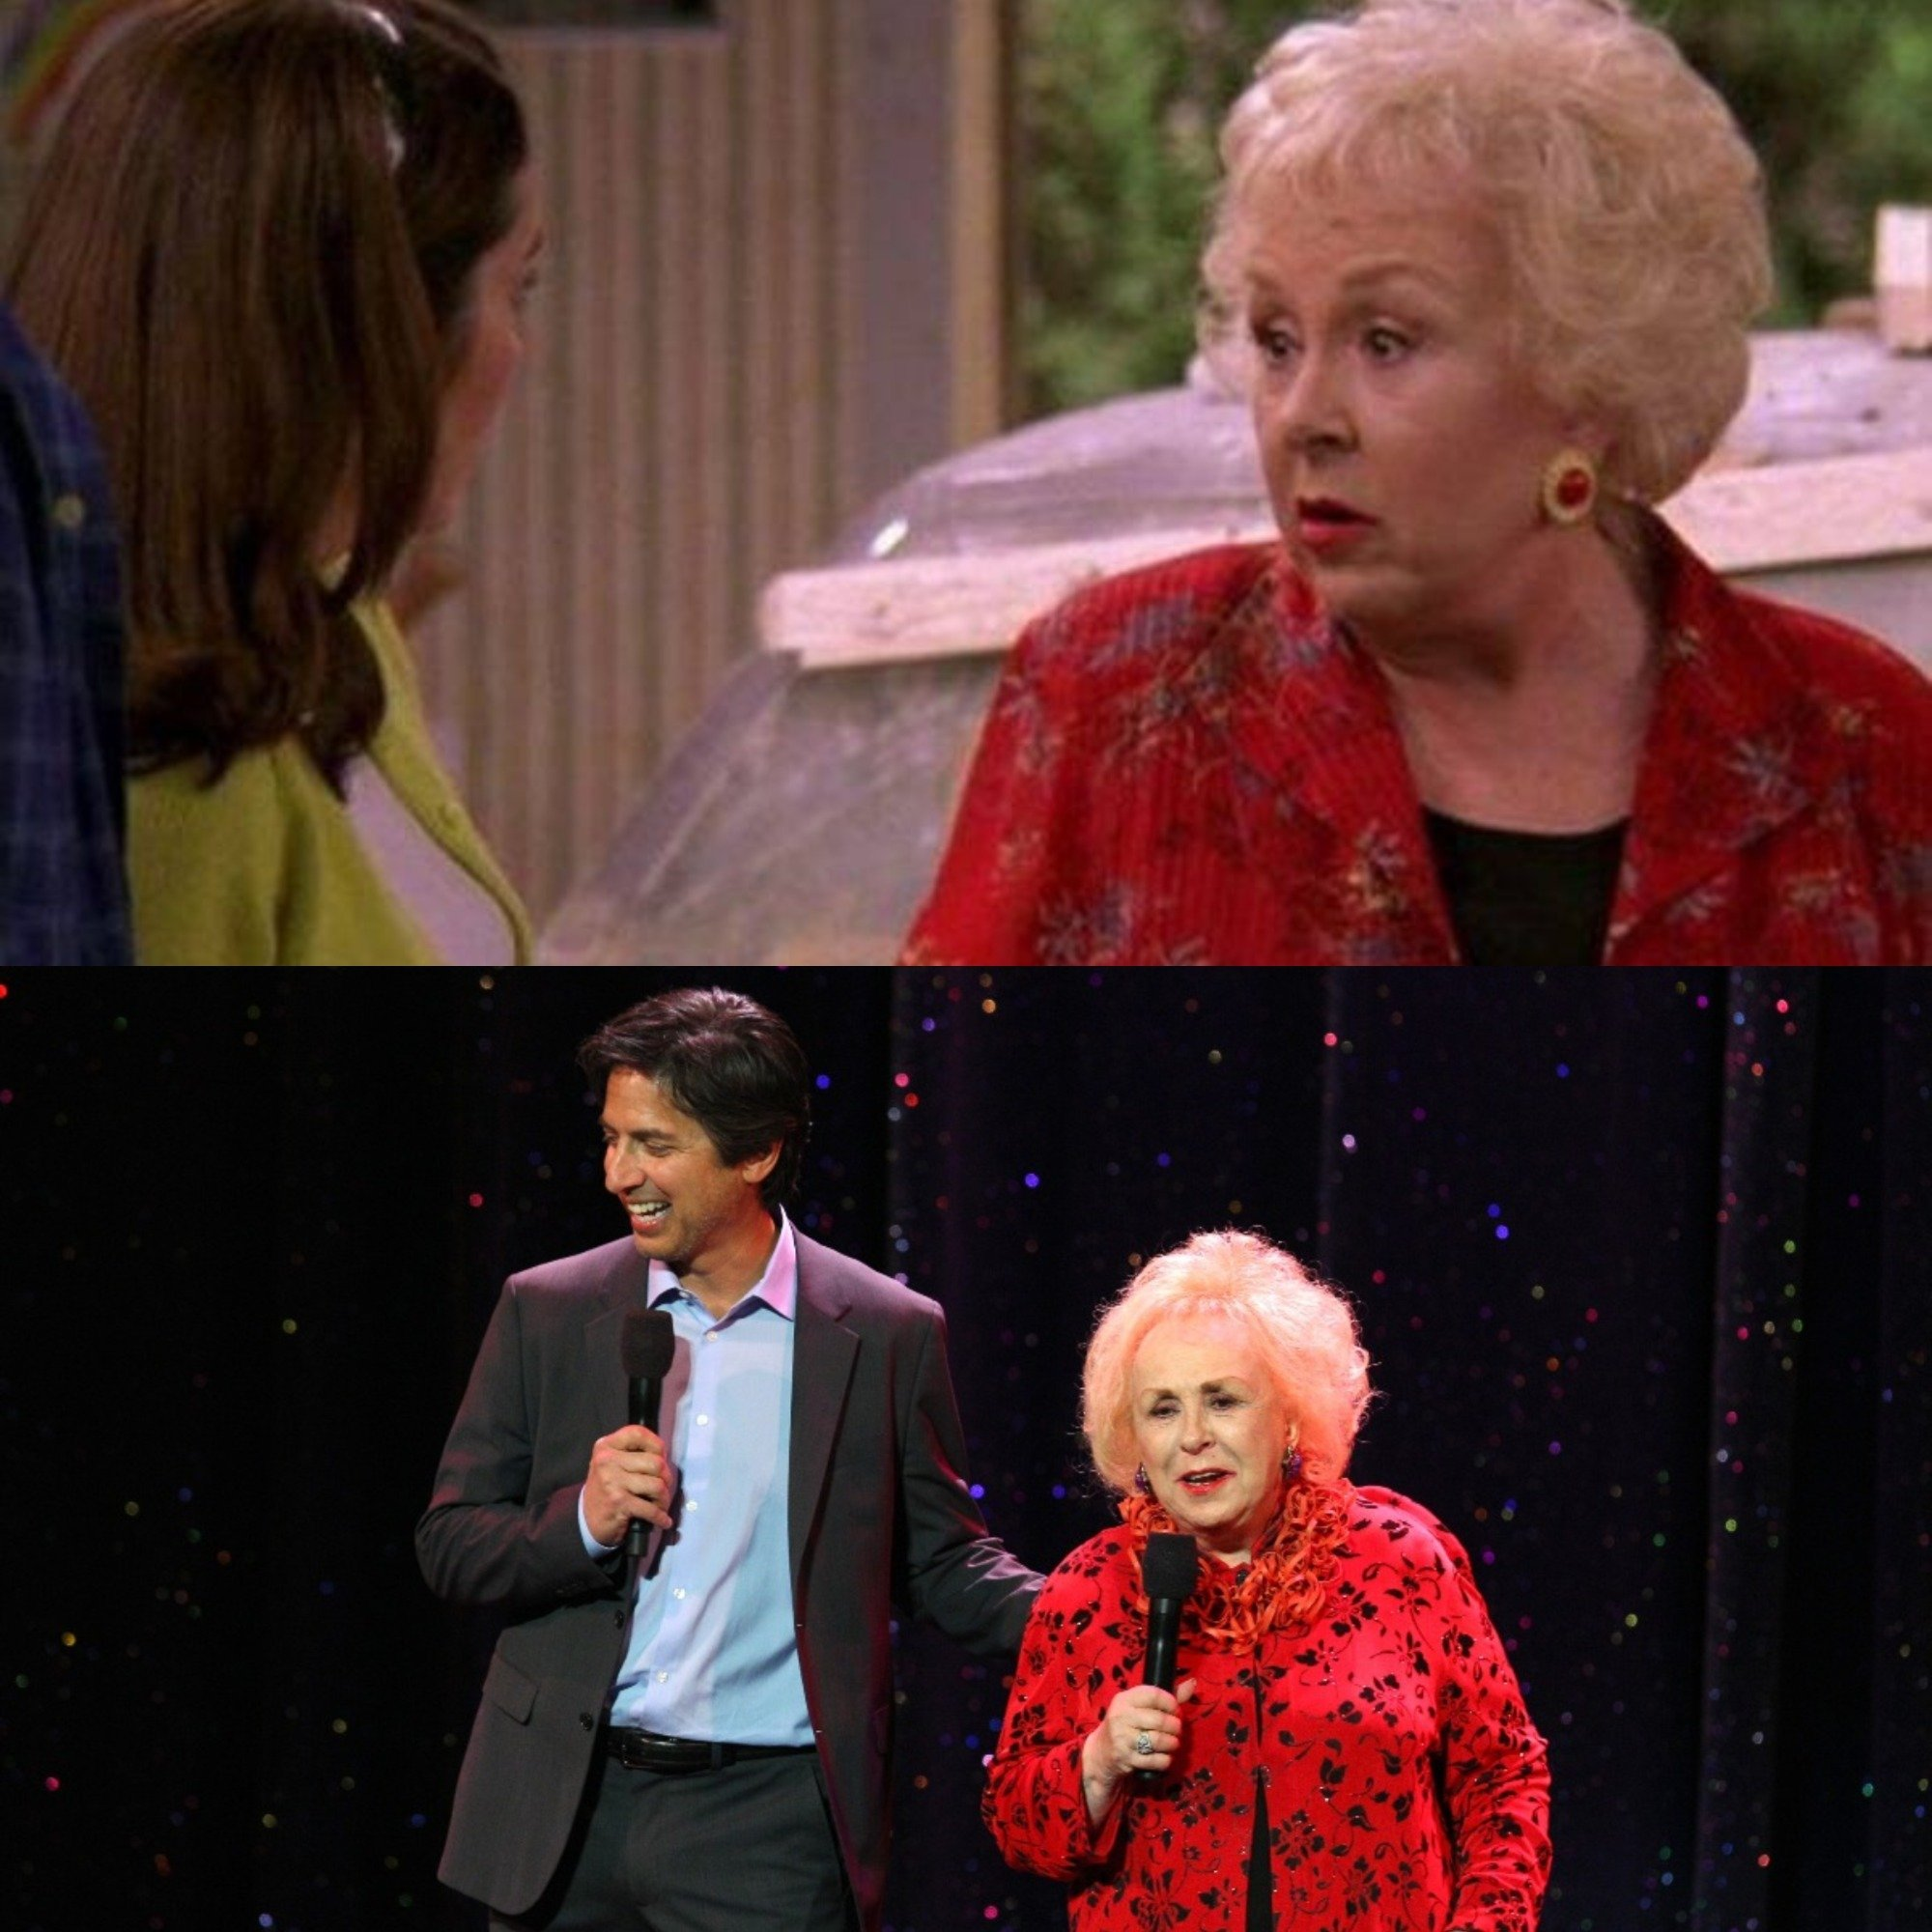 Image credits: CBS/Everybody Loves Raymond - Getty Images for IMF/Joe Scarnici